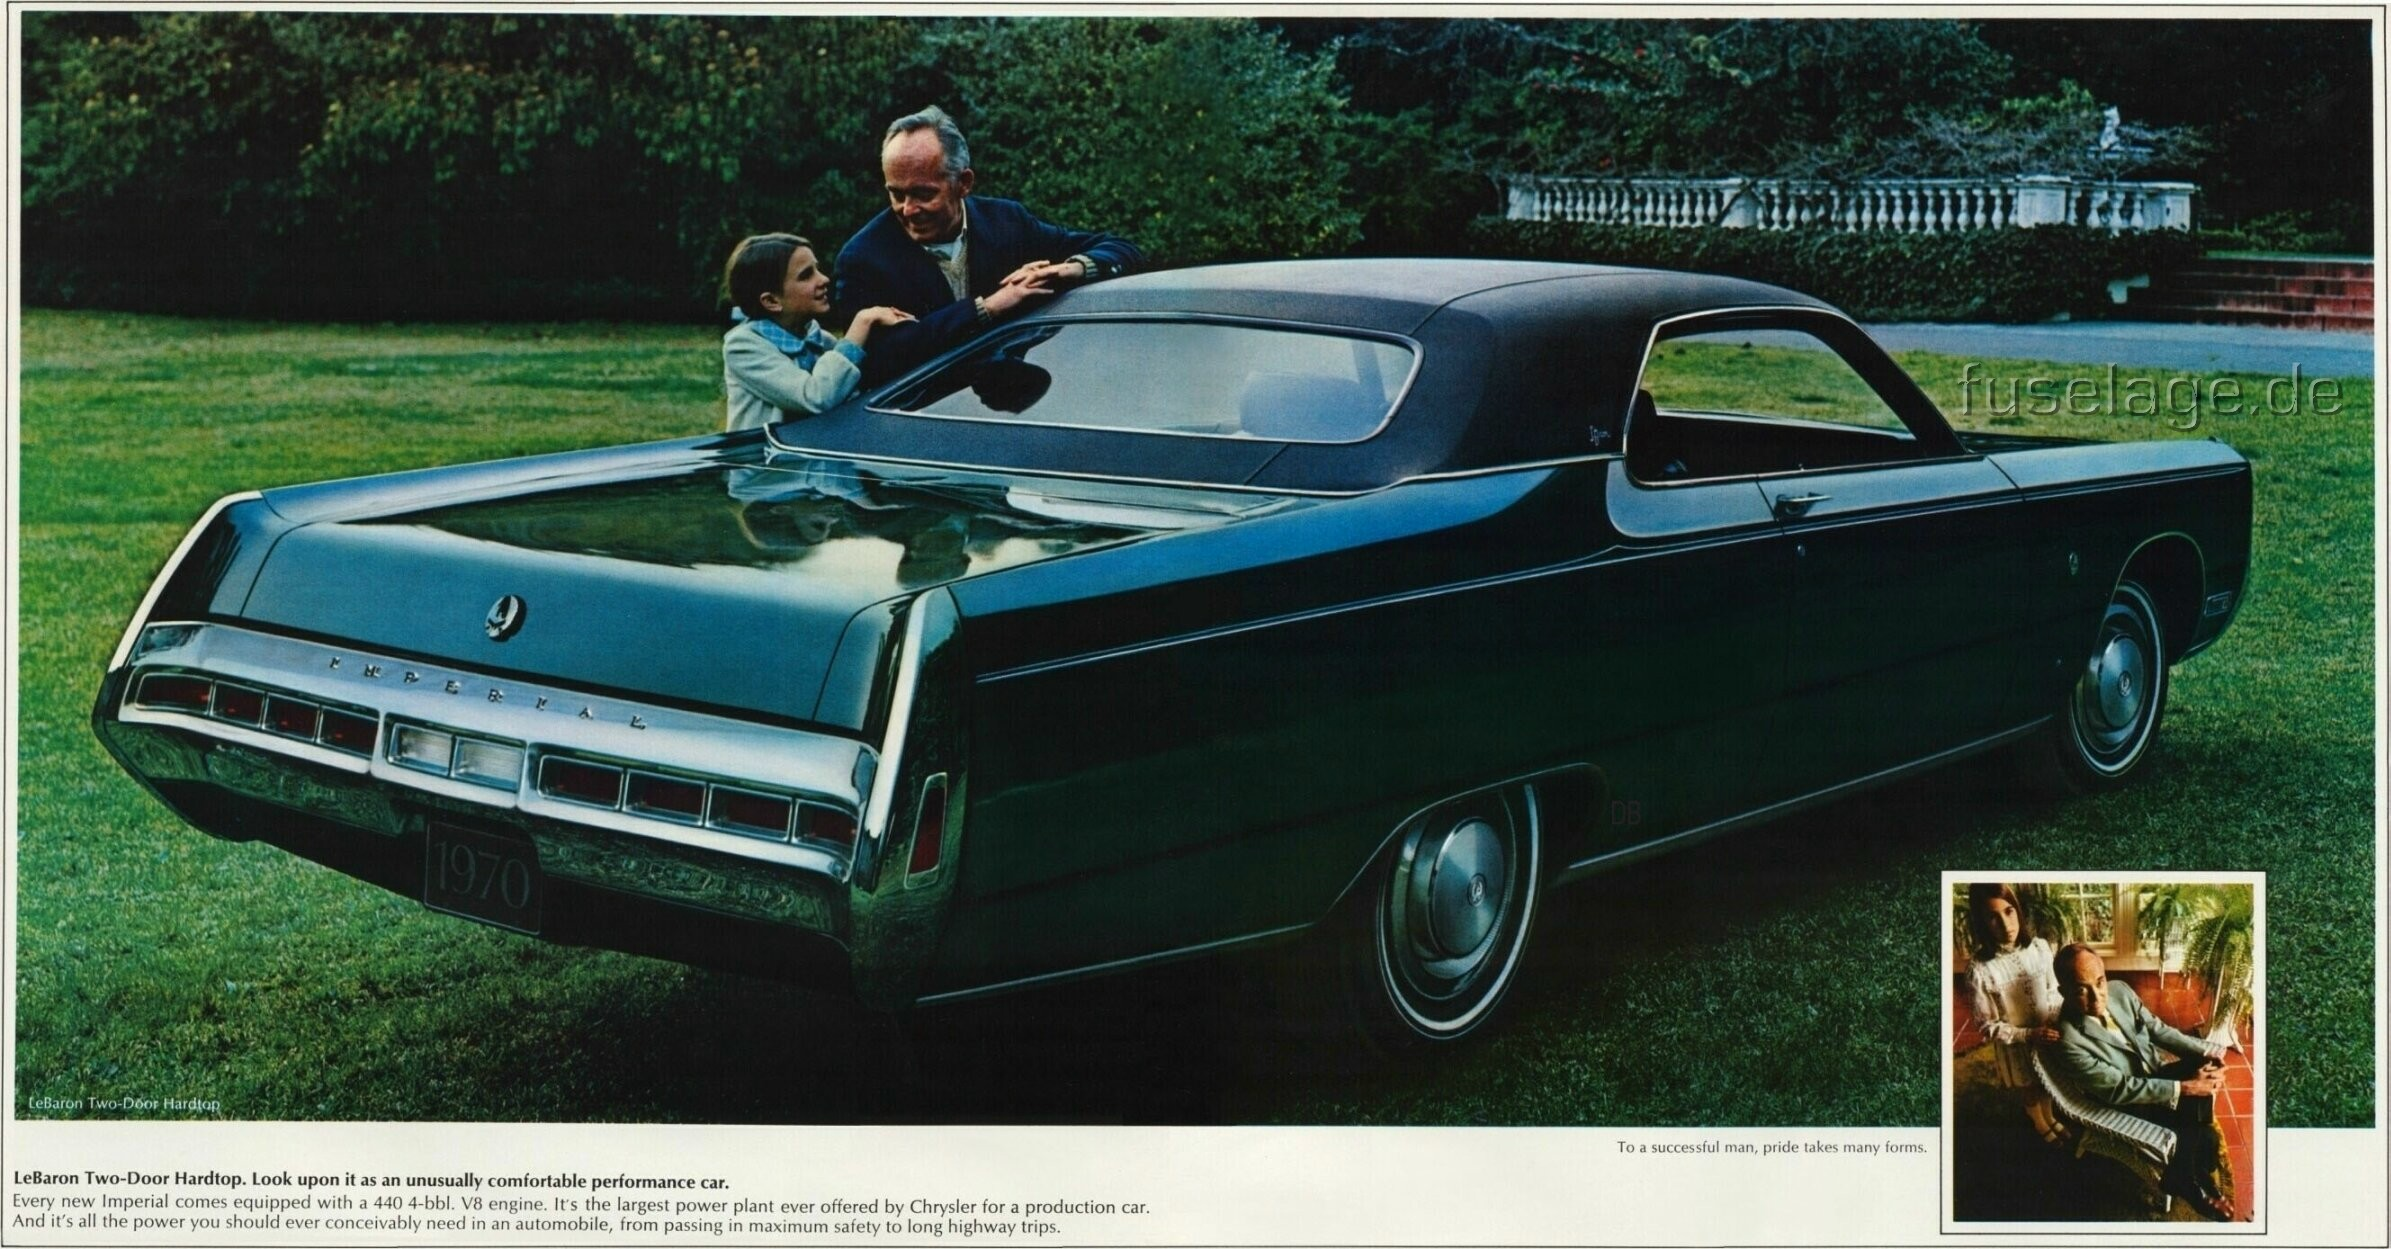 Town And Country Honda >> 1970 Chrysler Imperial LeBaron - Information and photos - MOMENTcar